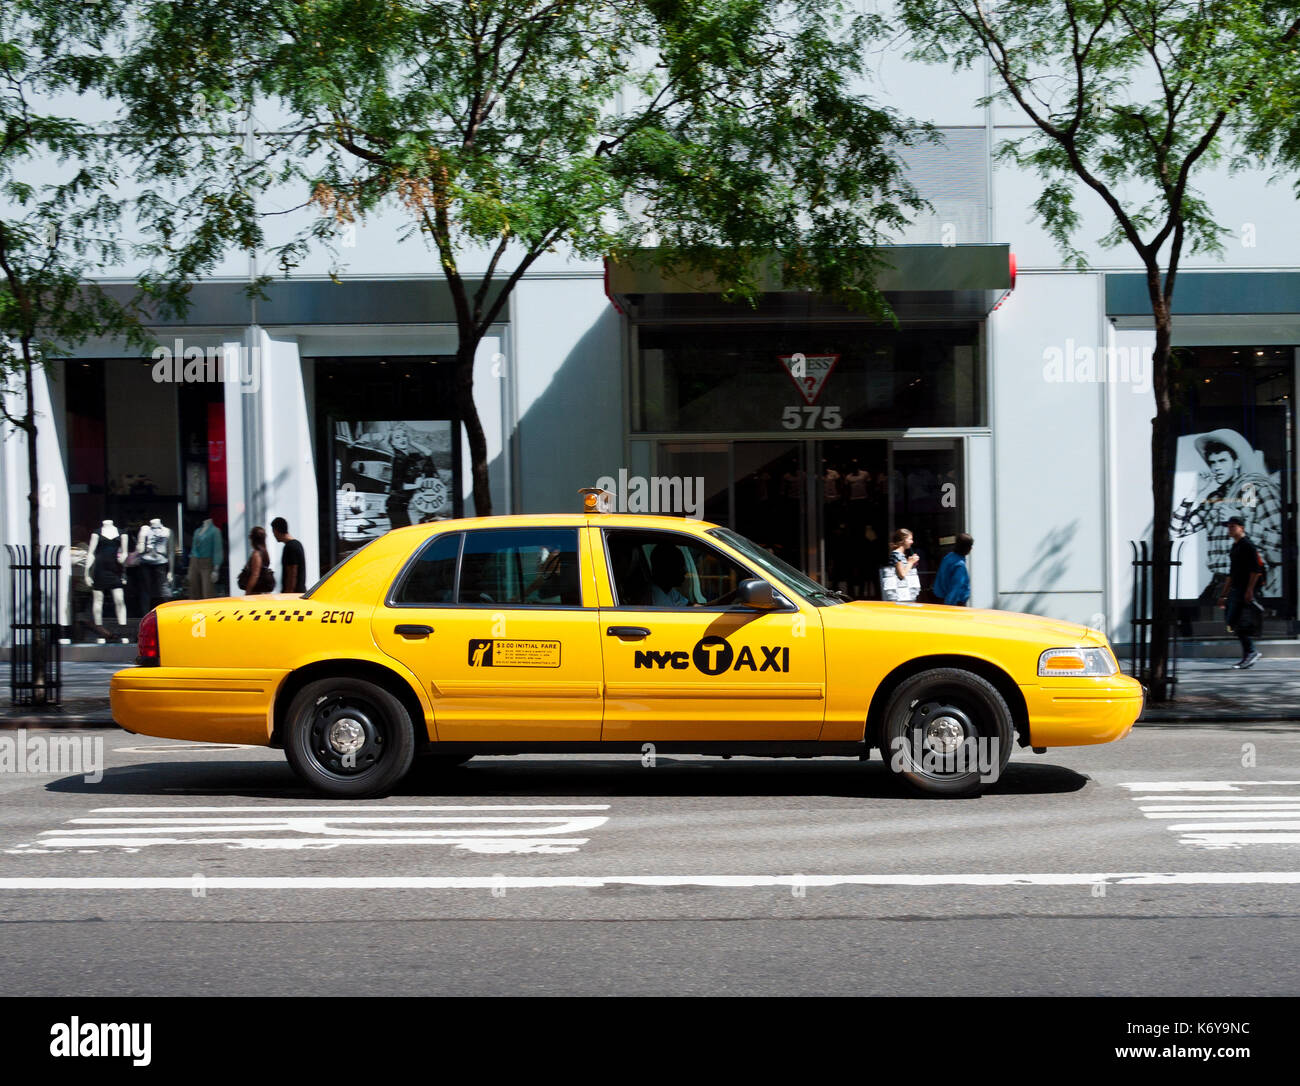 Yellow Taxi Cab - Stock Image